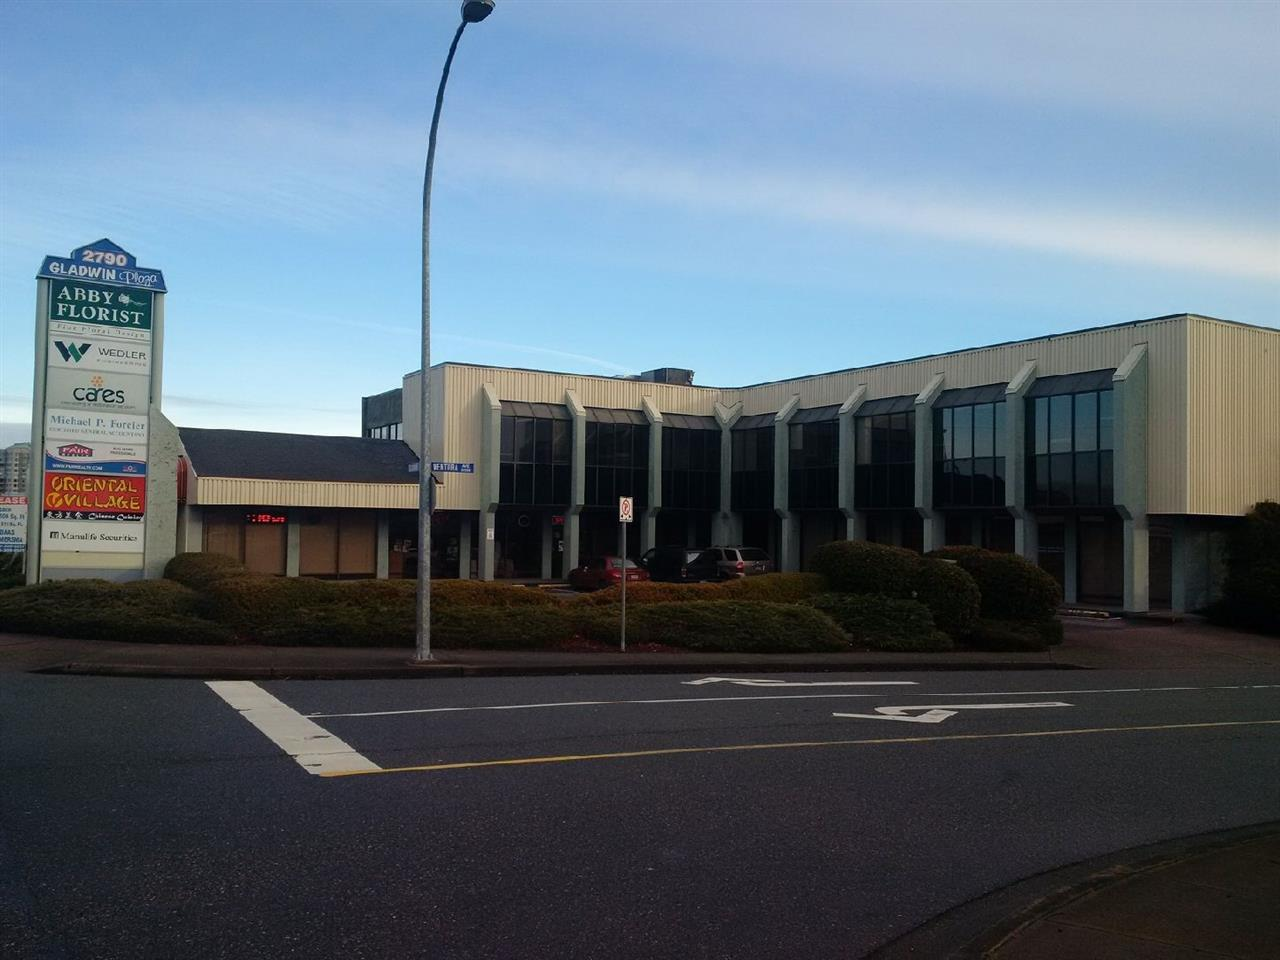 Located off South Fraser Way this office building has space available from 860 sq.ft. to +/- 8000. Spaces available on ground floor and second floor. Located in Central Abbotsford, close to the intersection of South Fraser Way and Gladwin Road. Has underground parking and is walking distance to restaurants and mall.